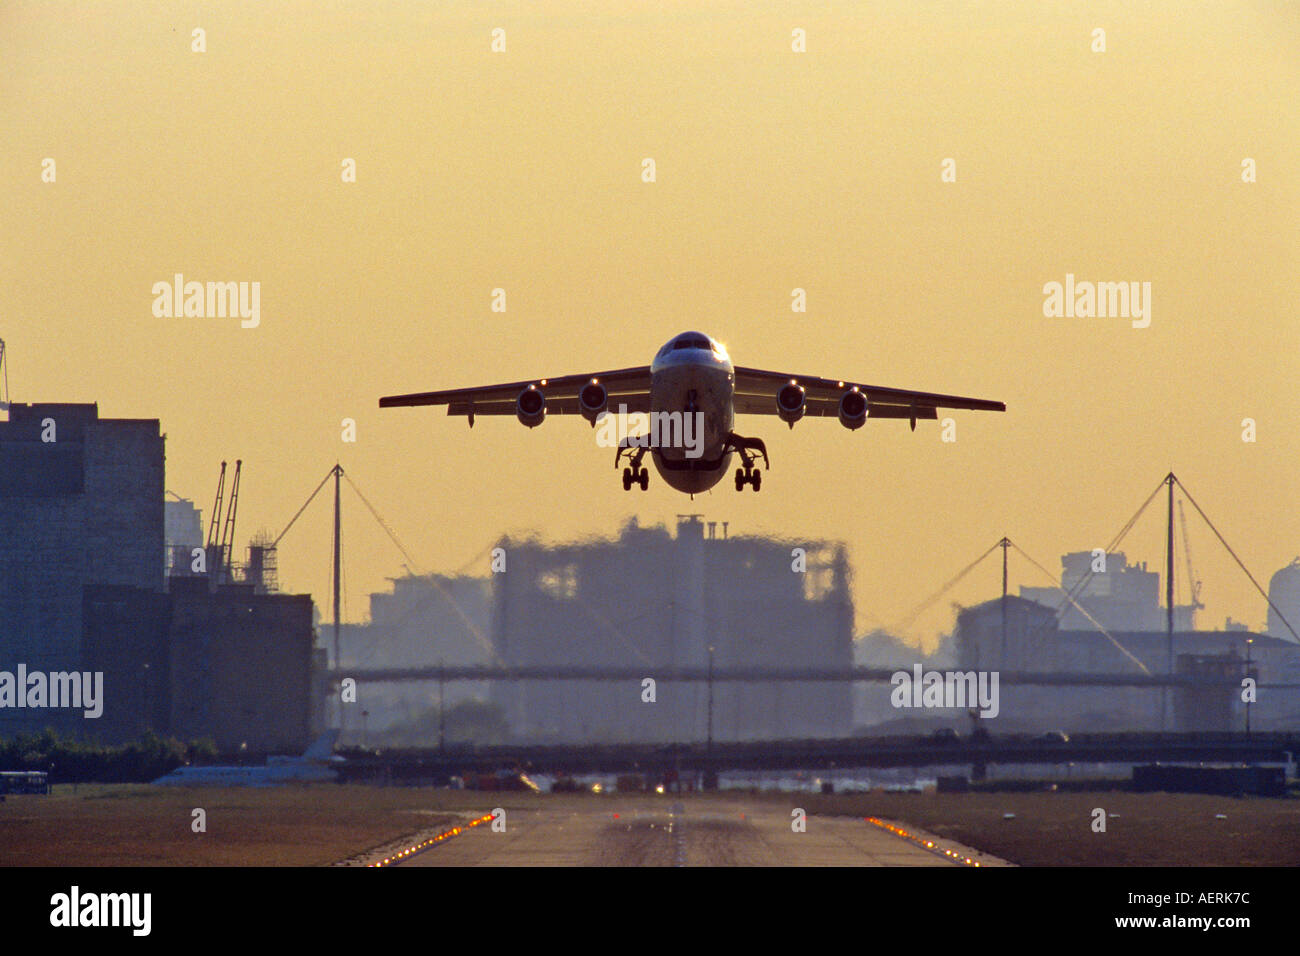 BAe 146 taking off from London City Airport - Stock Image